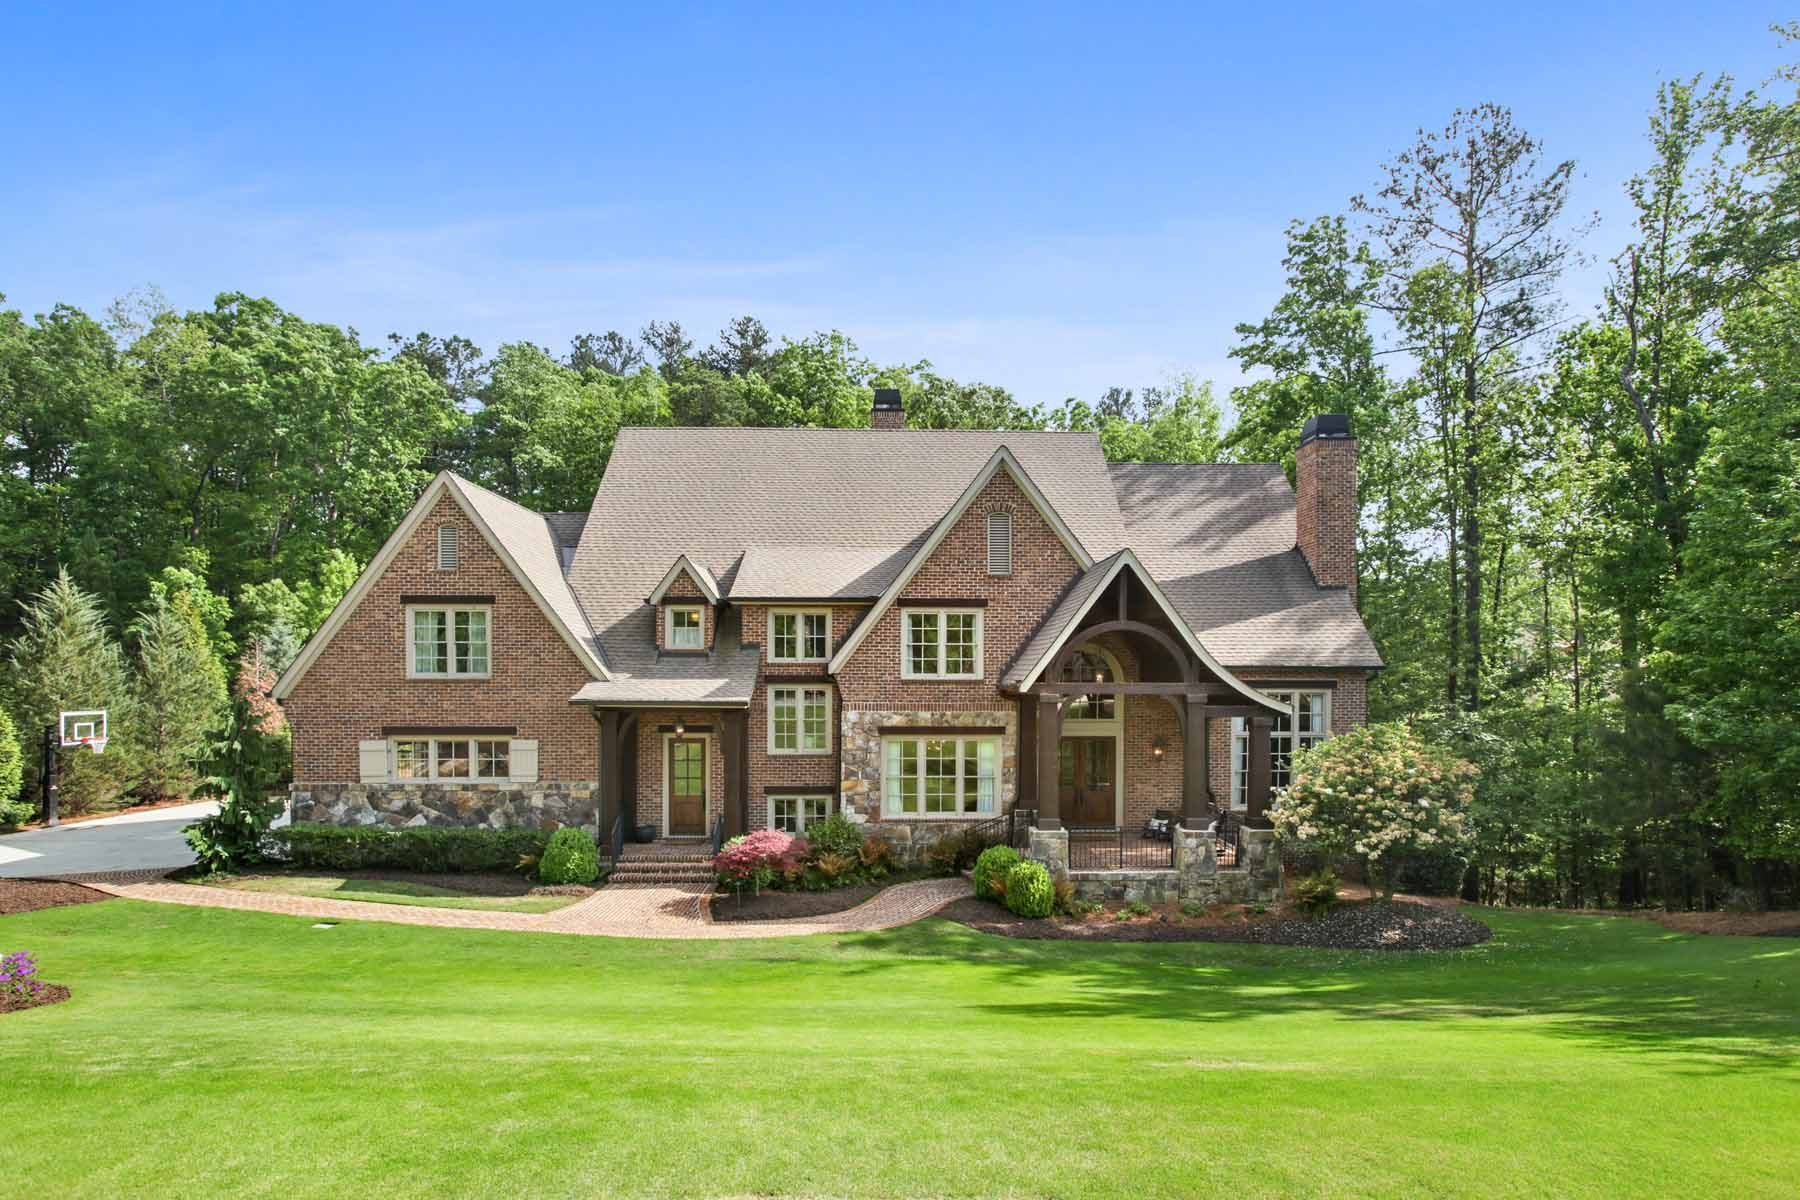 Casa Unifamiliar por un Venta en Beautiful Home in Prestigious River Club Neighborhood 898 Big Horn Hollow Suwanee, Georgia, 30024 Estados Unidos